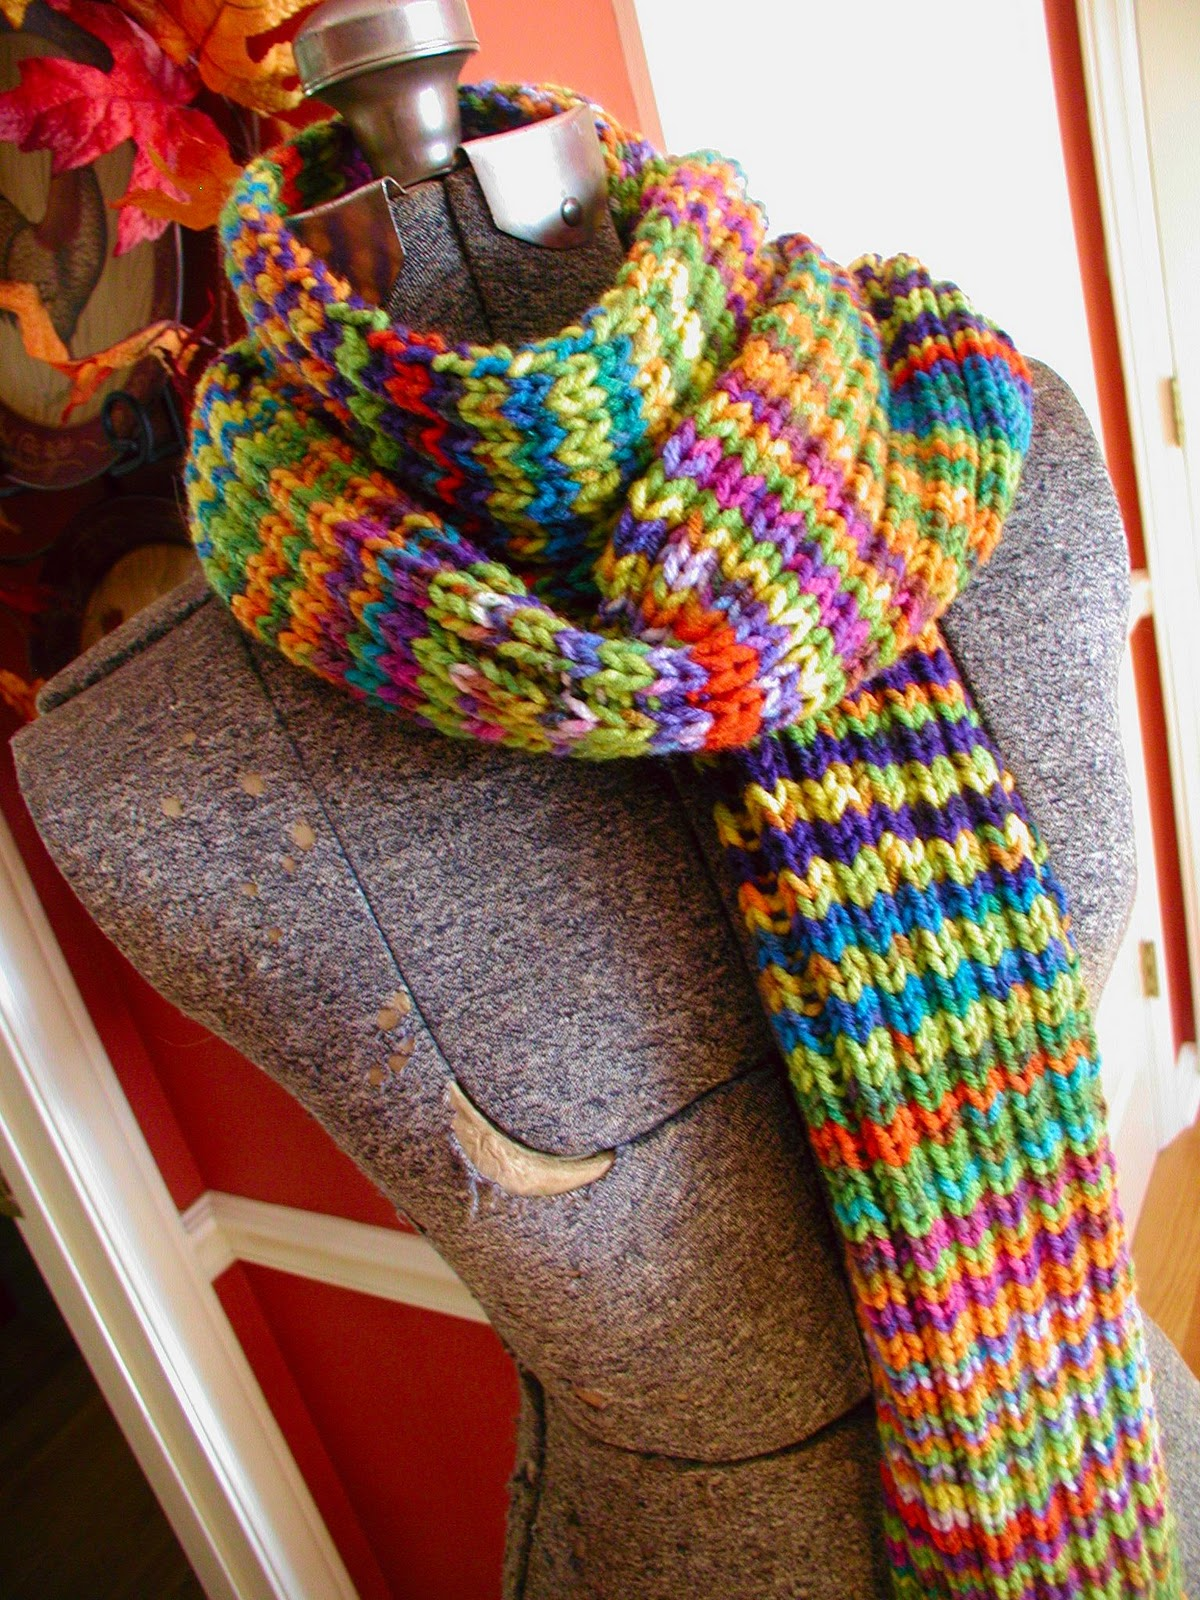 Fiddlesticks - My crochet and knitting ramblings.: The Technicolor Dream Scarf